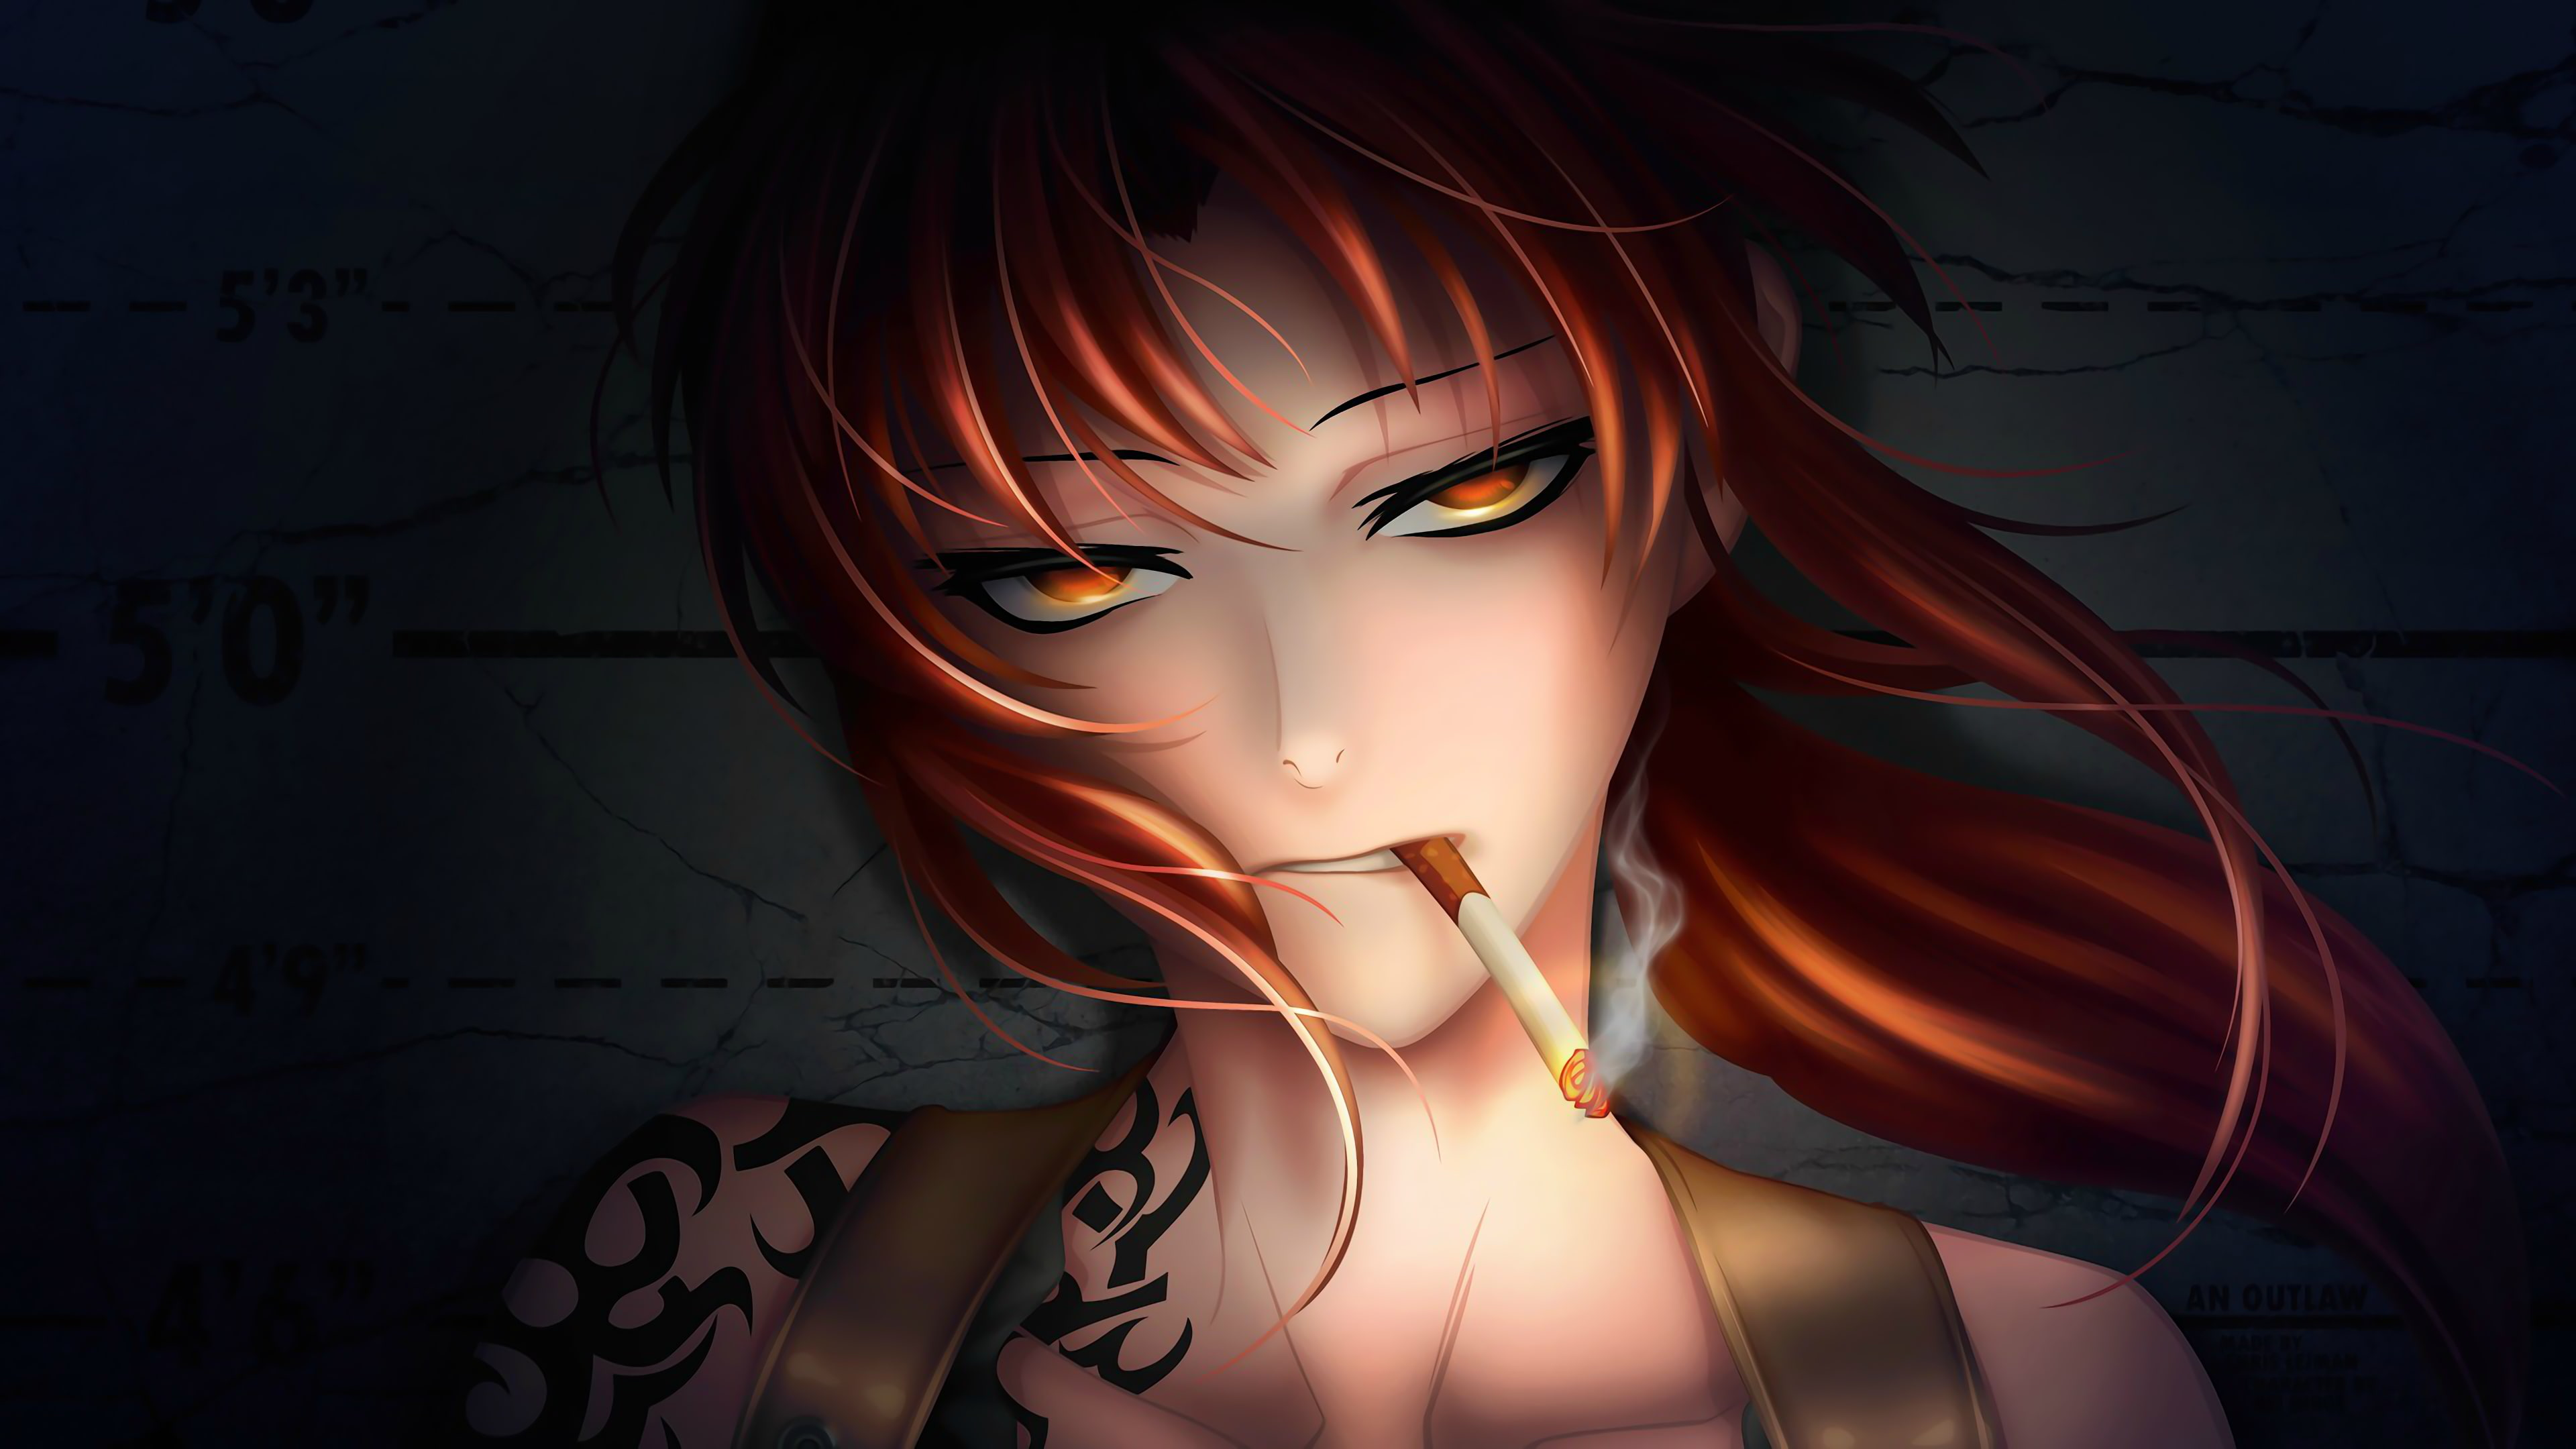 HD wallpaper anime anime girls Black Lagoon Revy one person 3840x2160